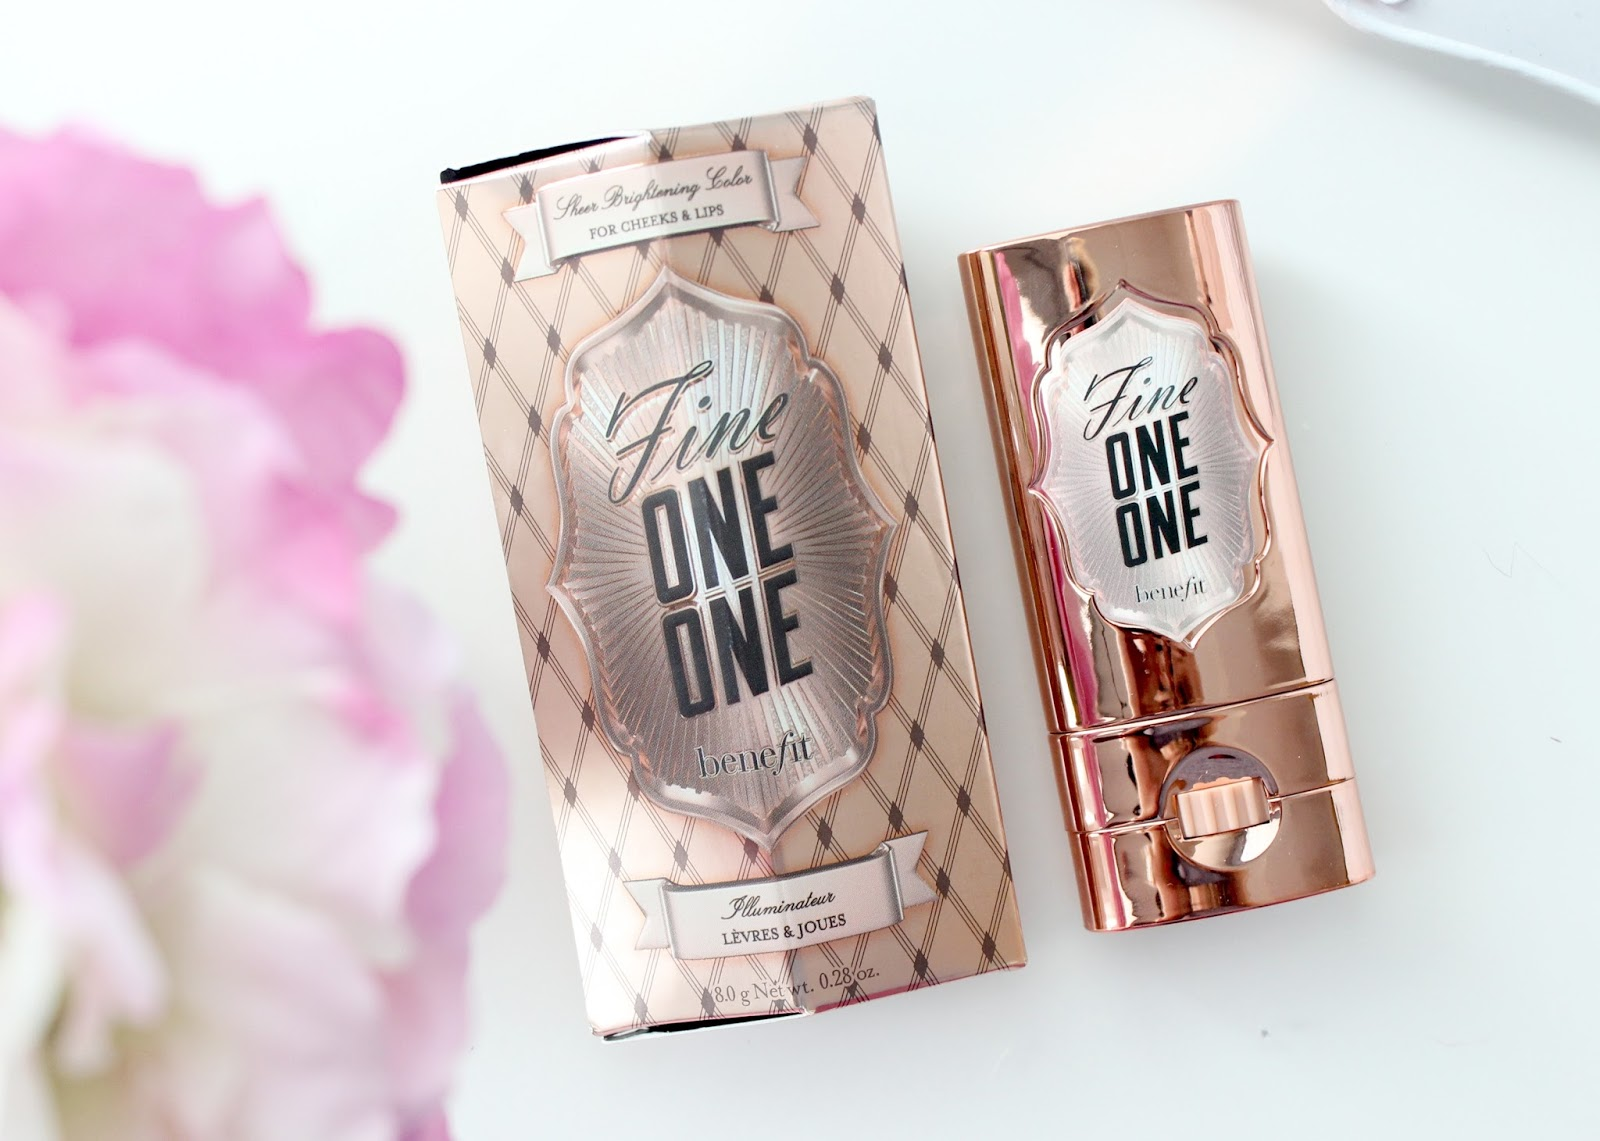 Benefit Fine One One Review, Benefit Fine One One Blush, Benefit Fine One One